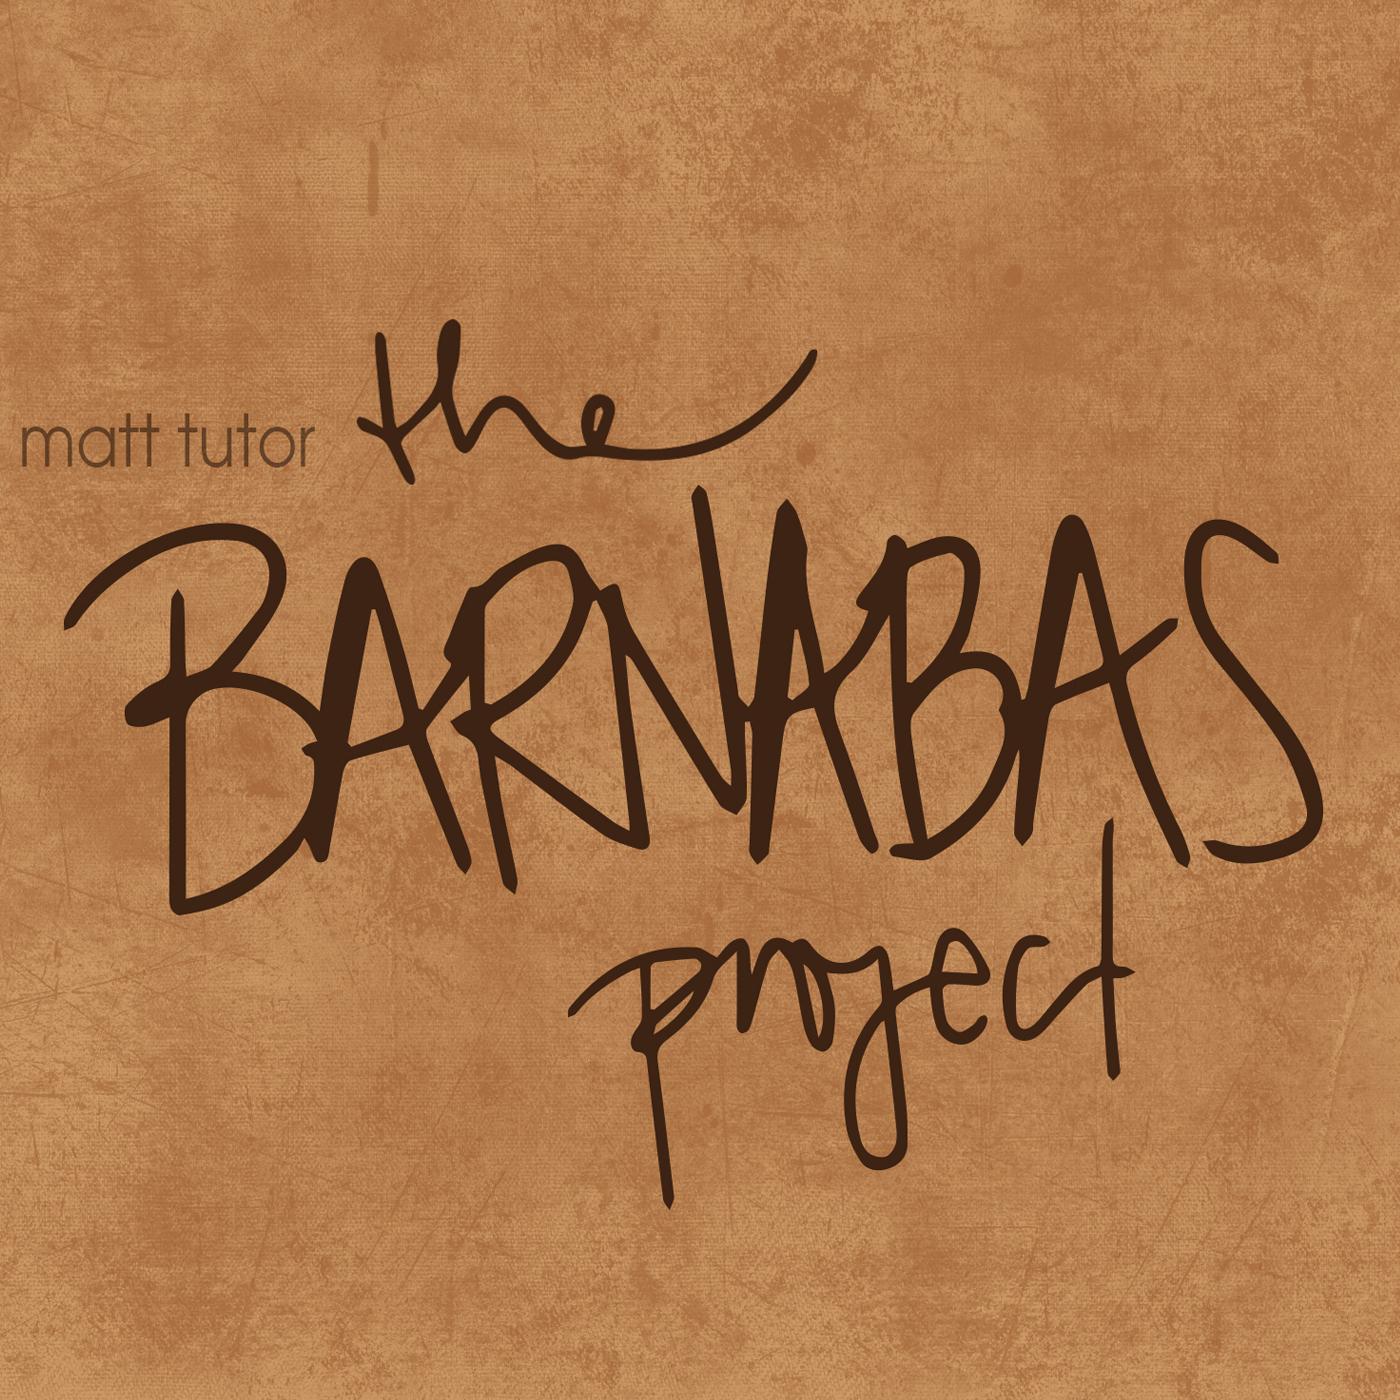 barnabas project So this site is the home of a project that is seeking to help our brothers and sisters in christ in their times of hardship the name is based on acts 4:32-37, where the early christians were helping each other out in practical ways, and included a man named barnabas, who sold a field and brought the proceeds to help.